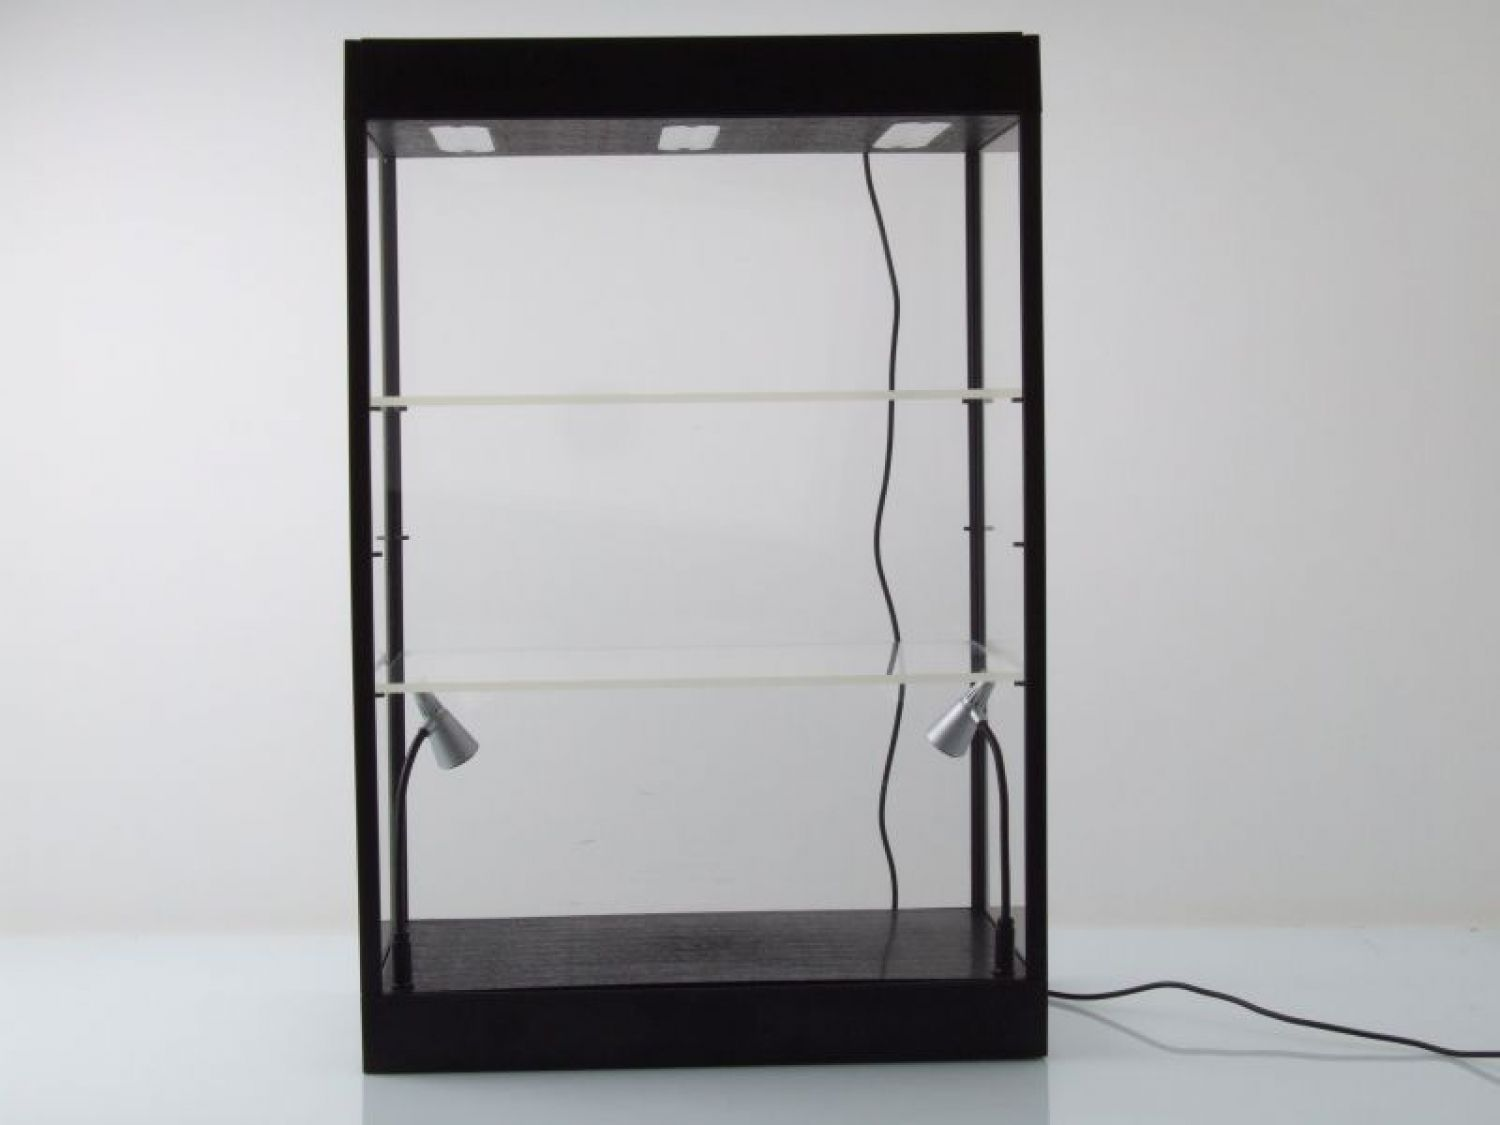 vitrine mit led beleuchtung schwarz f r modellautos 5 led lampen triple9 ebay. Black Bedroom Furniture Sets. Home Design Ideas